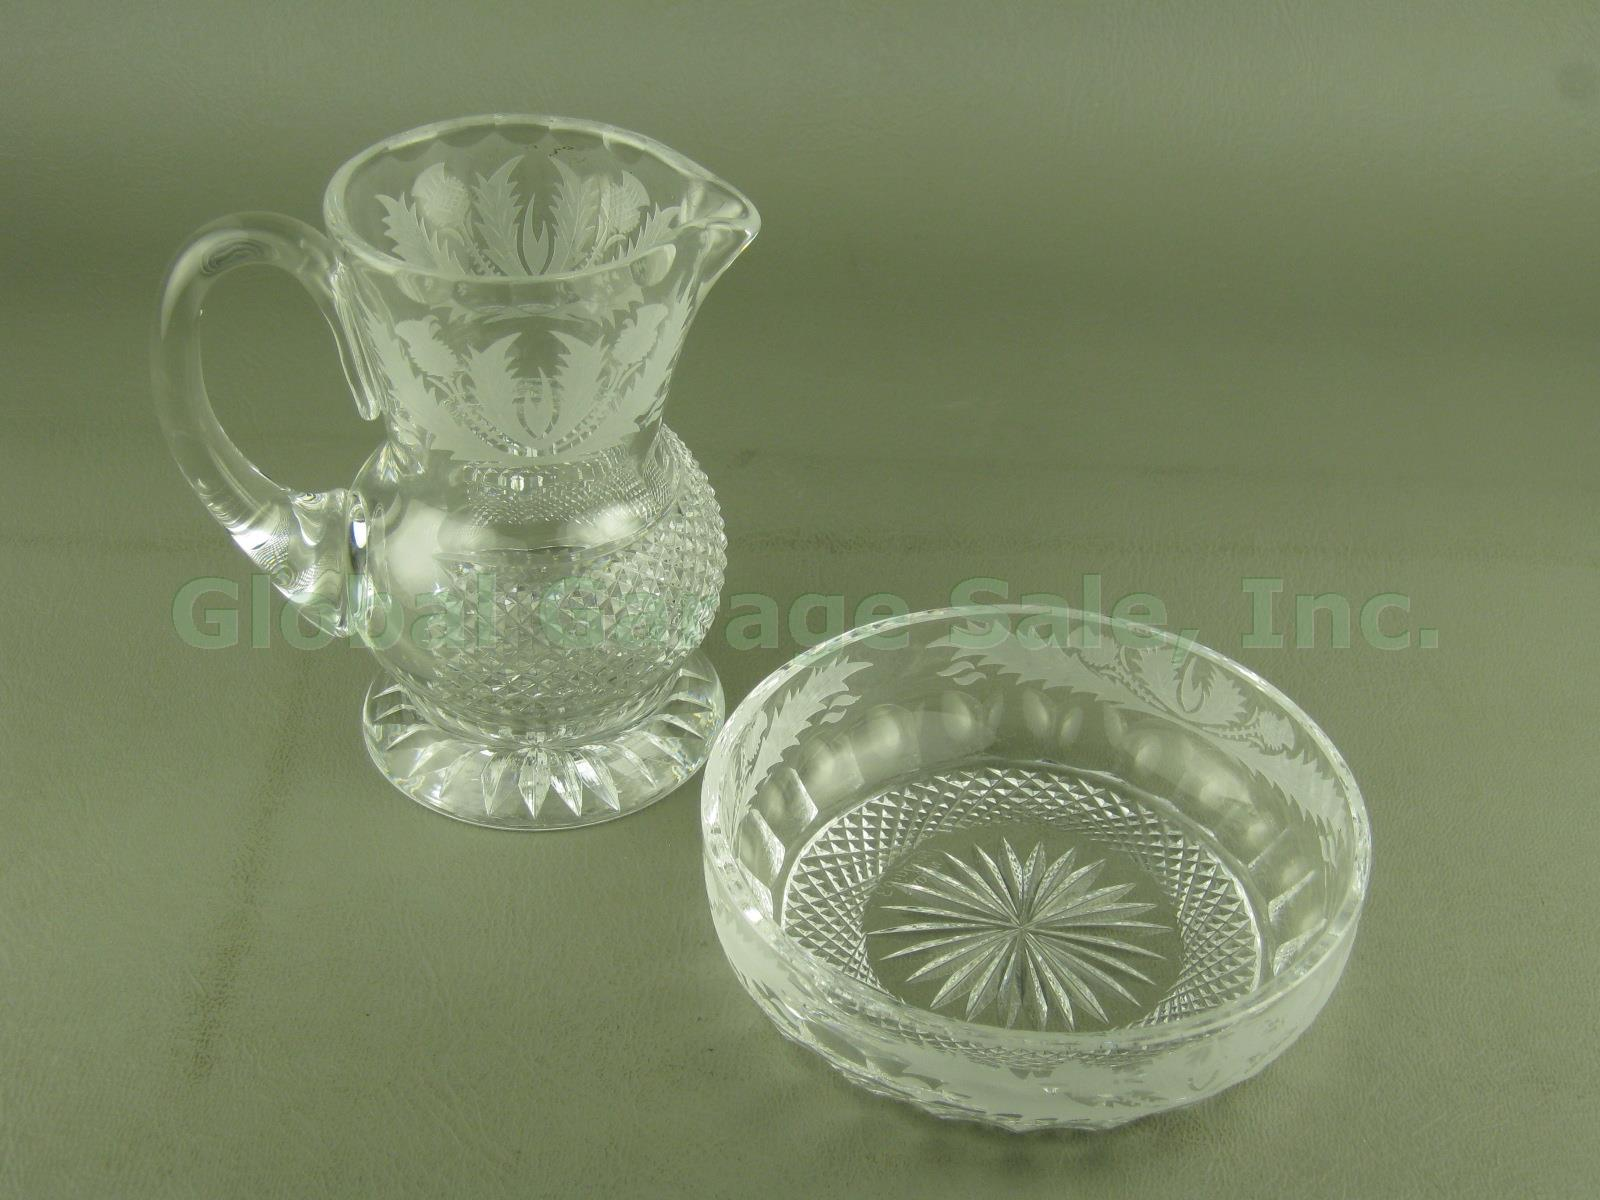 Glassware Sold By Global Garage Sale